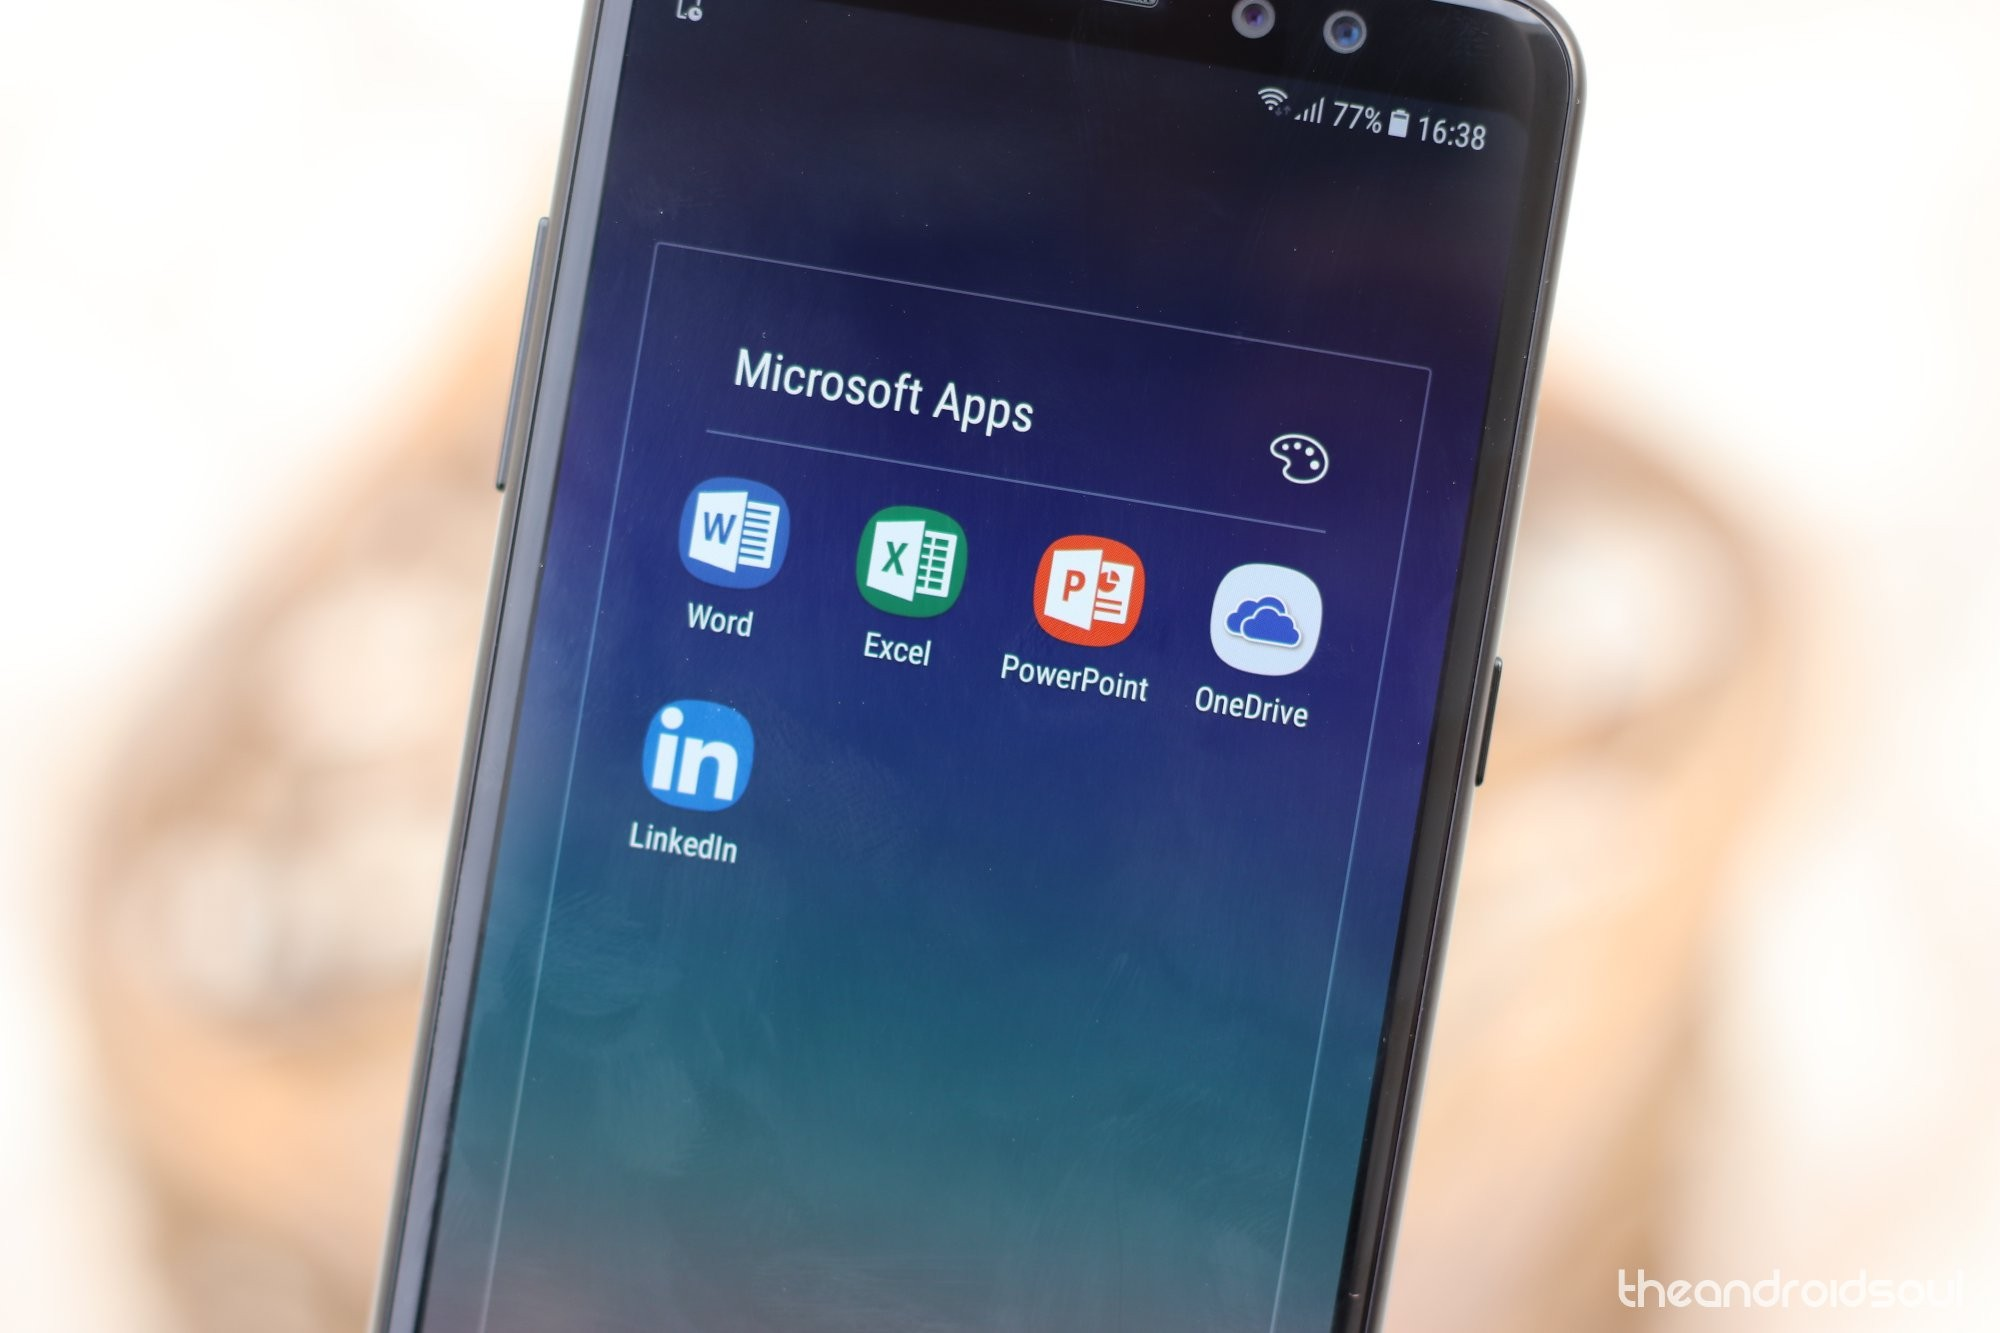 Galaxy A8 plus 2018 preinstalled apps